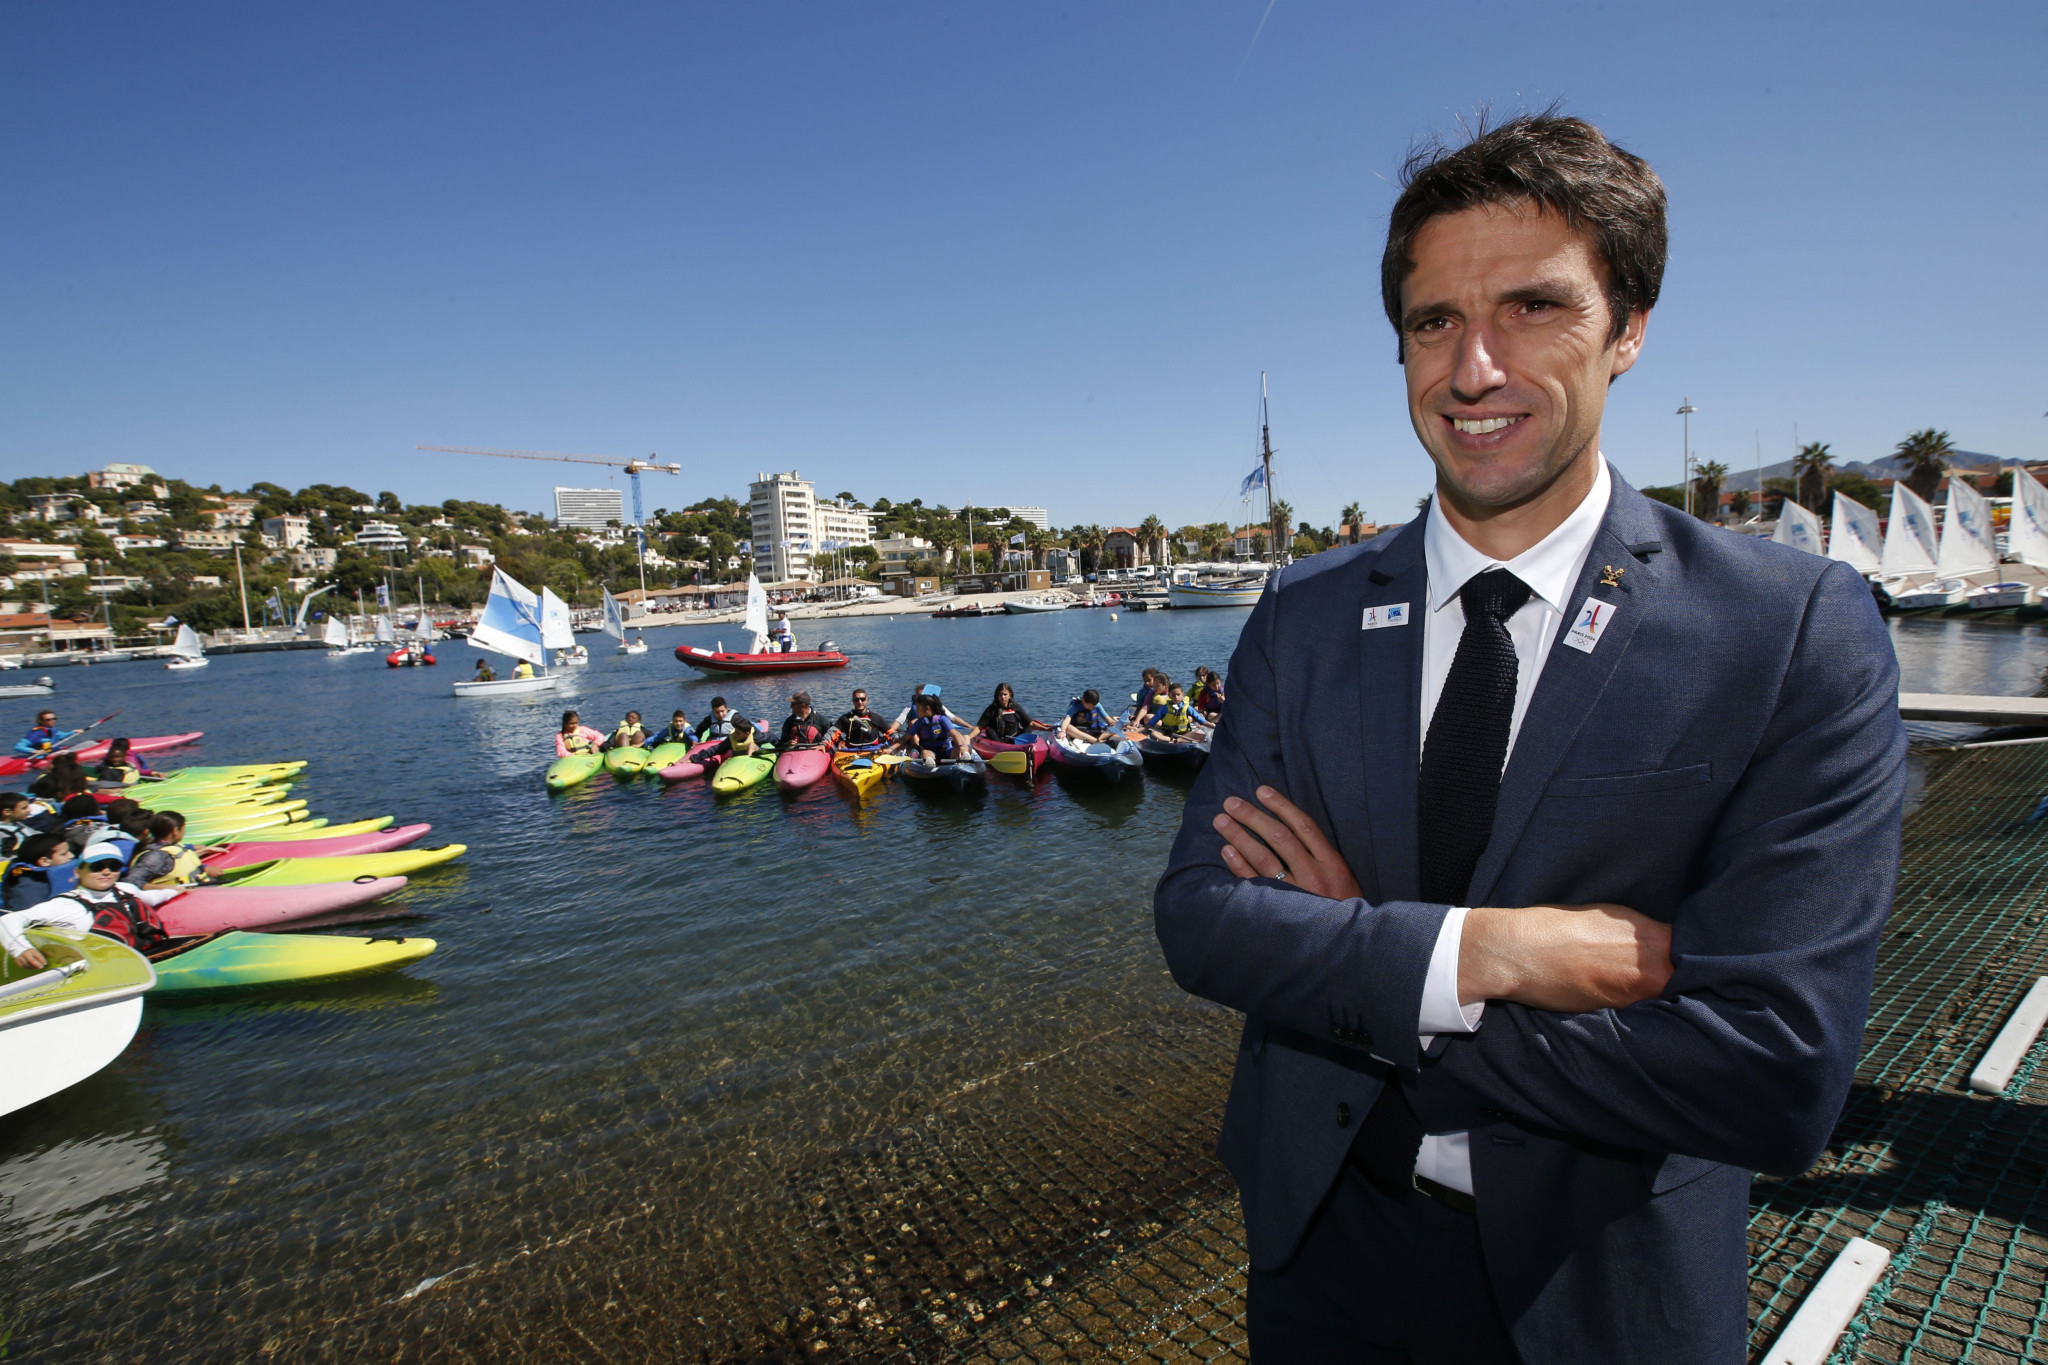 Estanguet offers thanks to those who contributed to successful Paris 2024 bid